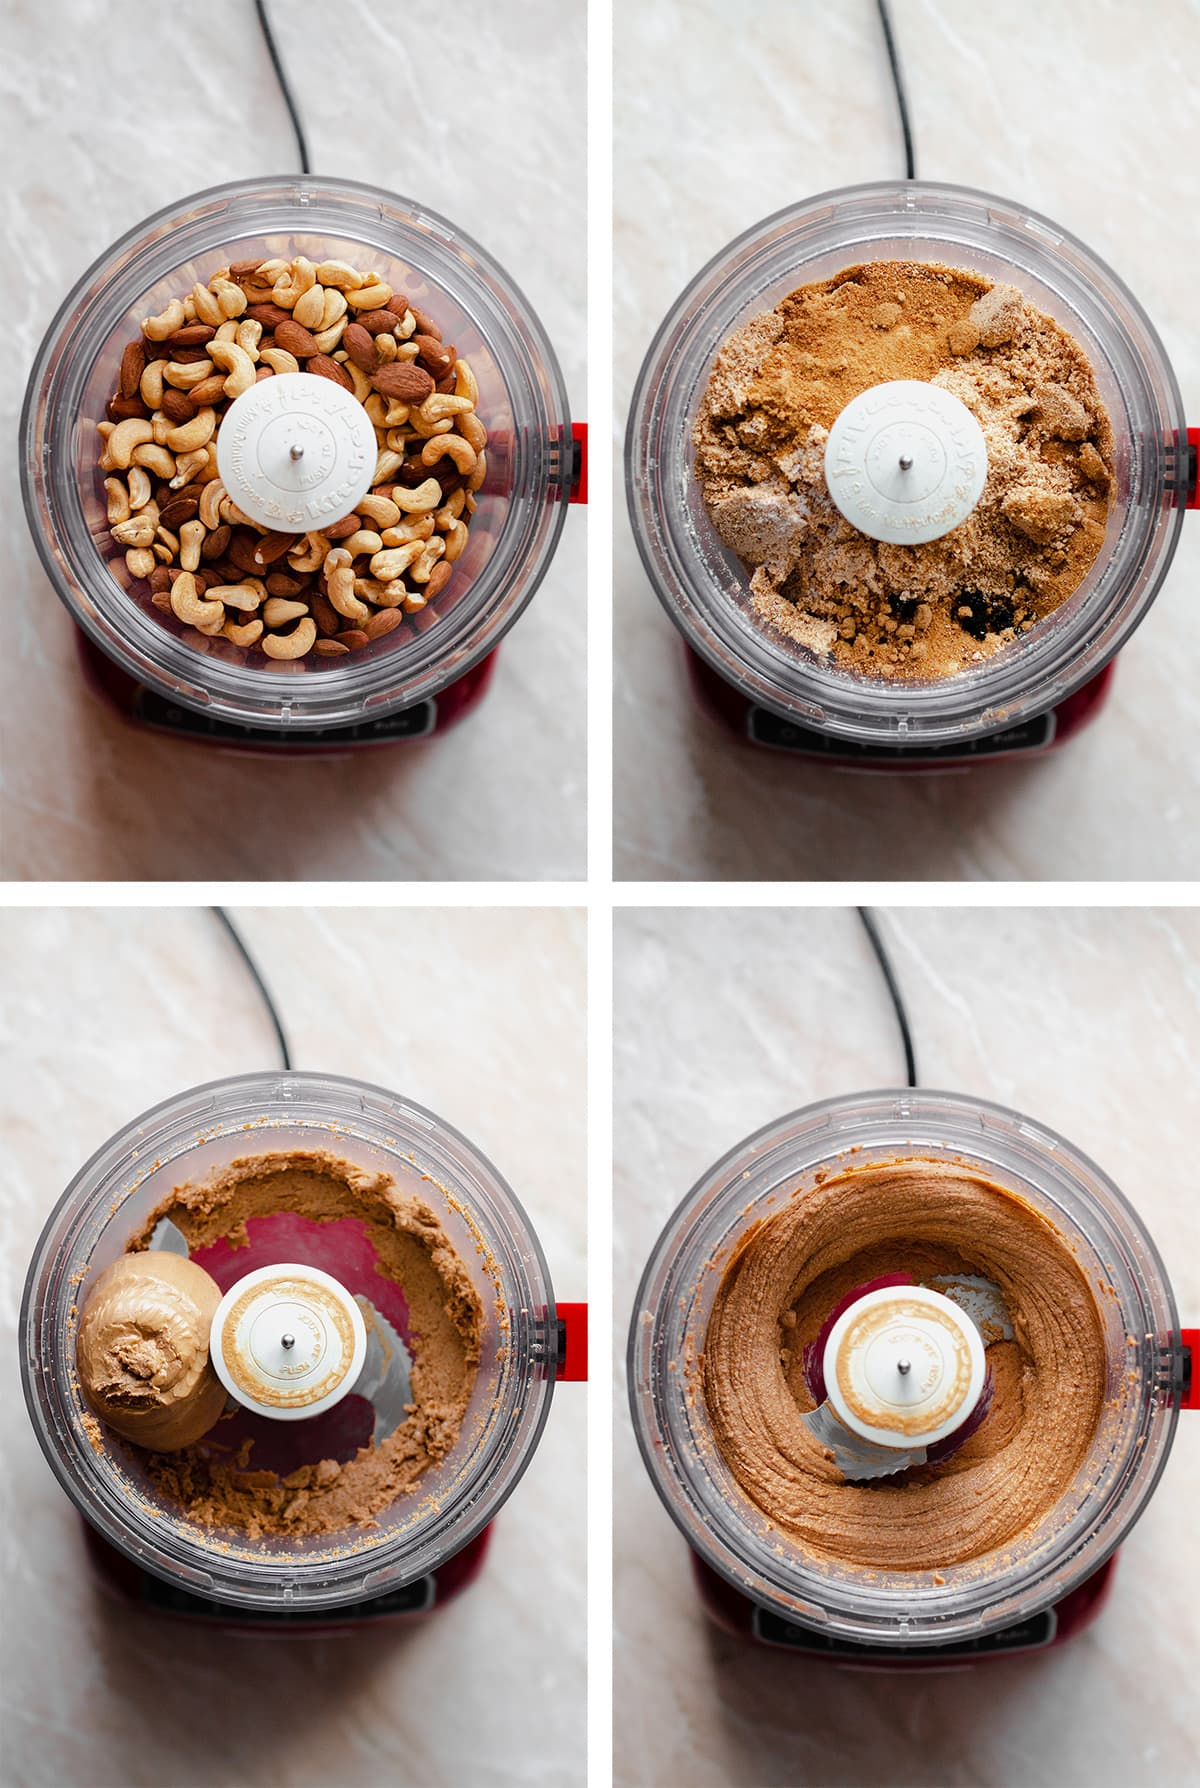 4 process shots of making caramel nut butter in a food processor.